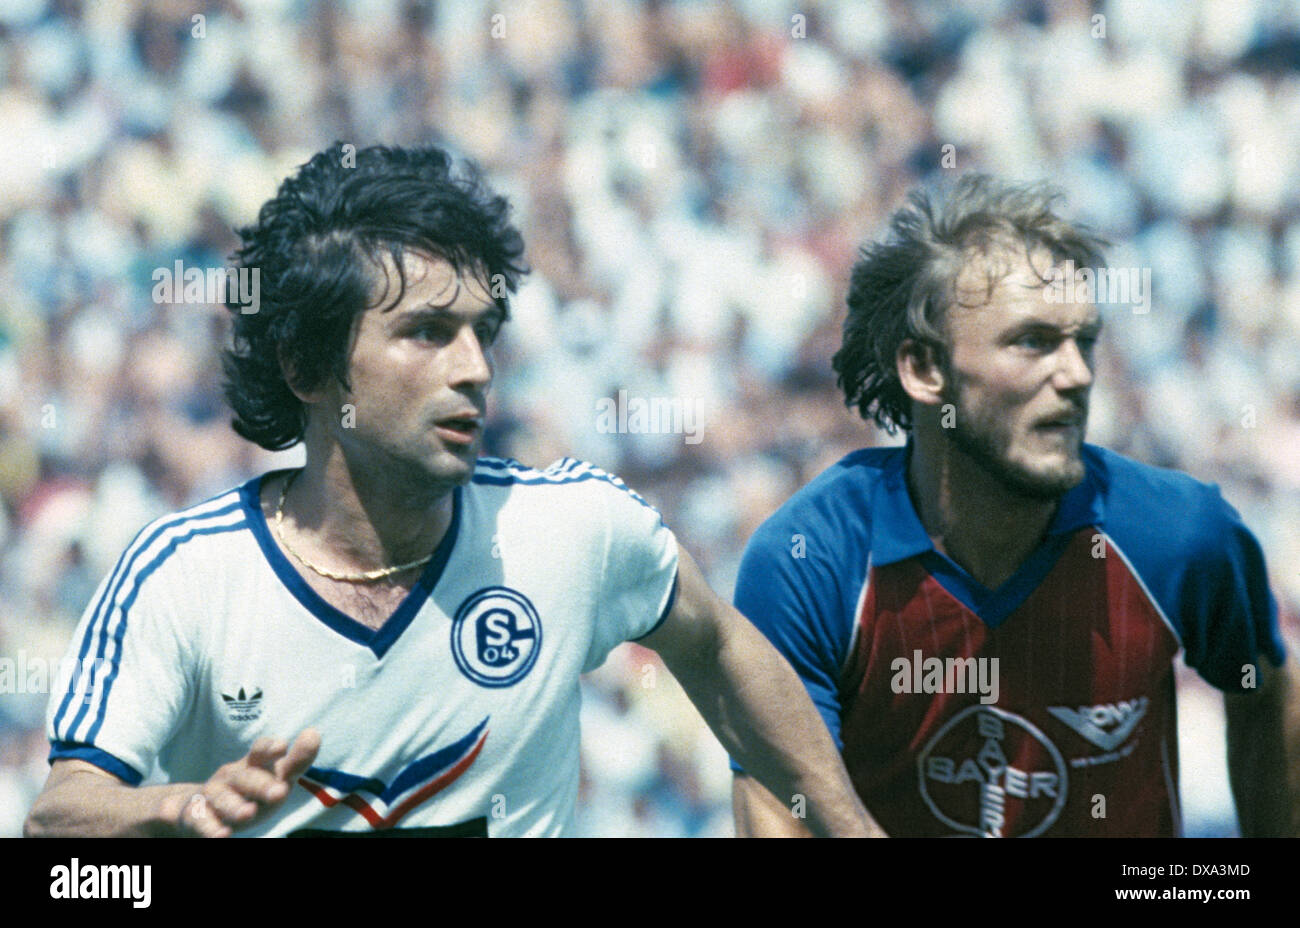 football, 1. Bundesliga, 2. Bundesliga, 1982/1983, relegation match to Bundesliga 1983/1984, return leg, Park Stadium, FC Schalke 04 versus FC Bayer 05 Uerdingen 1:1, scene of the match, Ilyas Tuefekci (S04) left and Werner Buttgereit (Bayer) - Stock Image